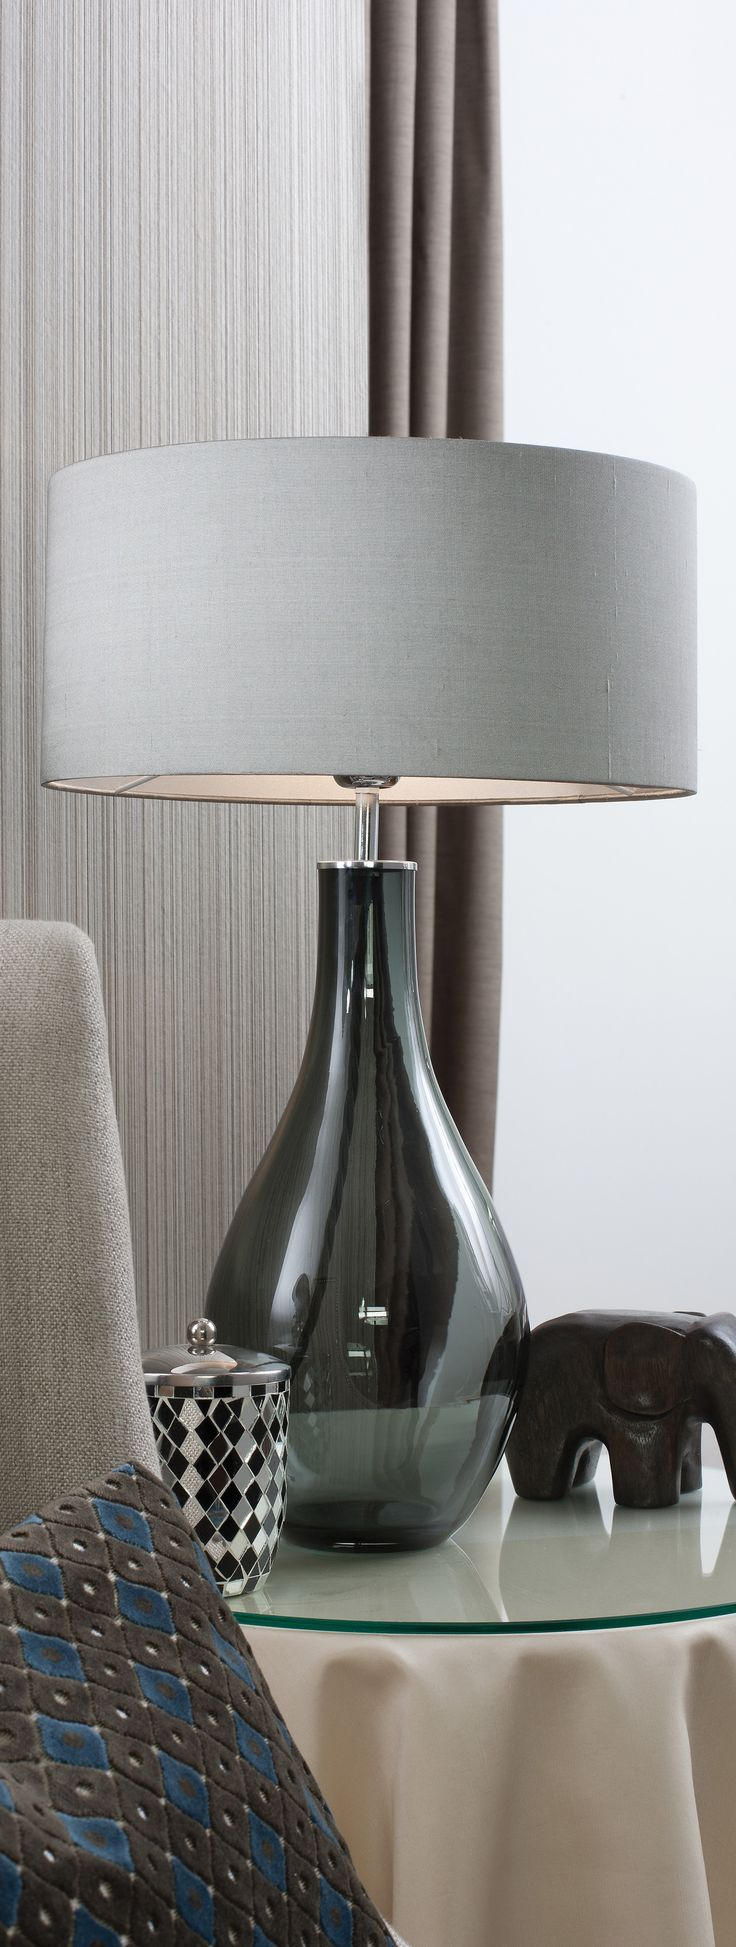 353 best lighting - table lamps images on pinterest | lamp design